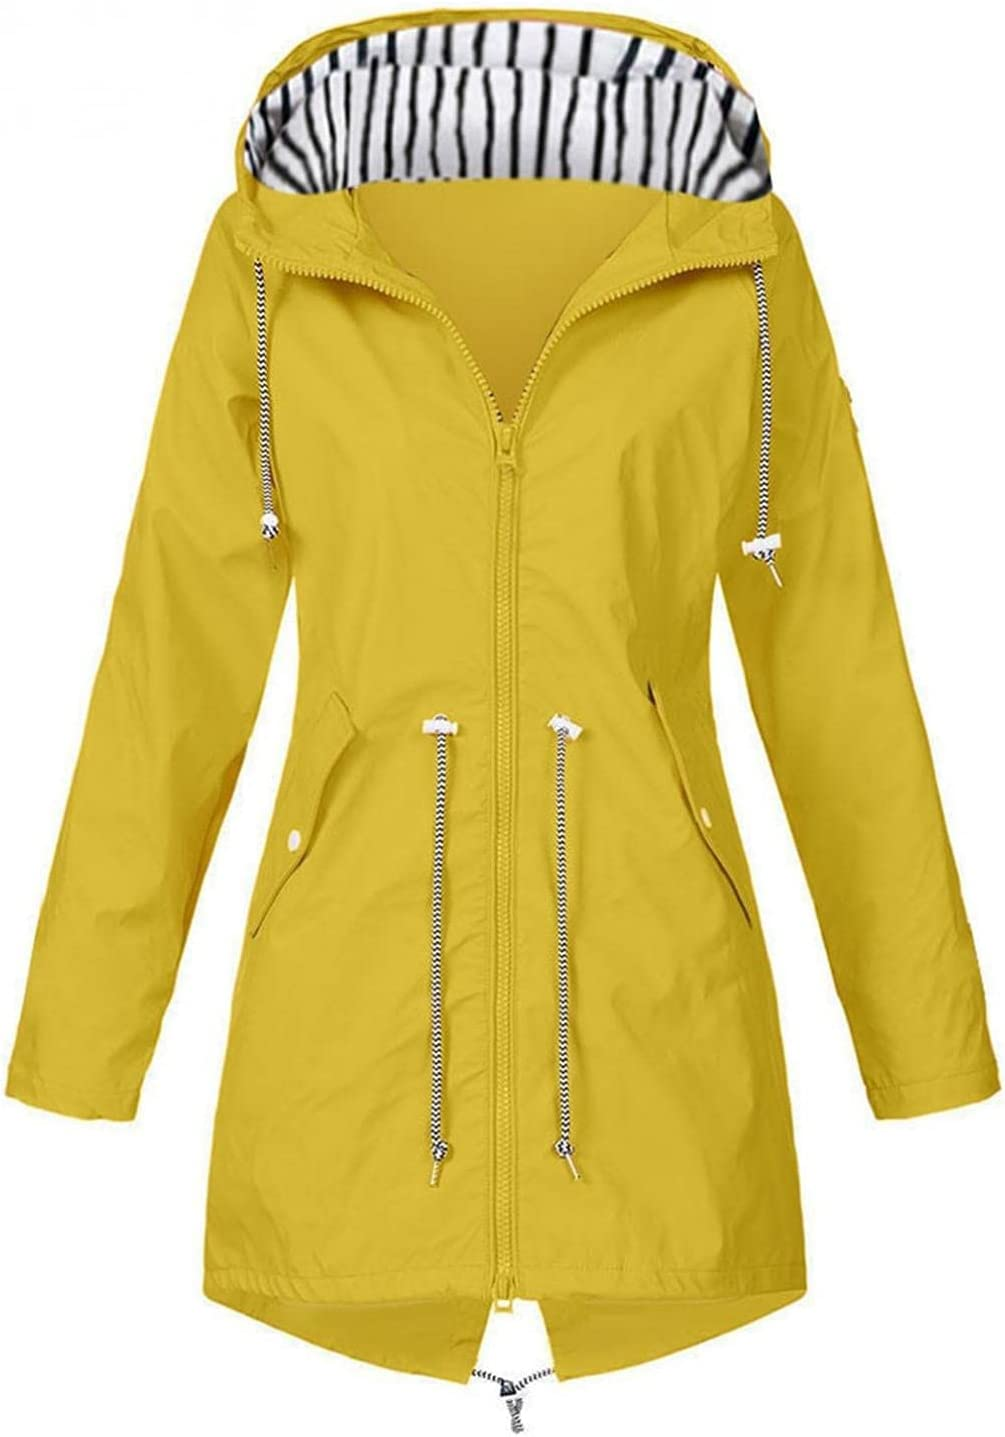 Tucson Mall Obersheen Women Casual Max 62% OFF Jackets Hooded P Solid Lightweight Jacket